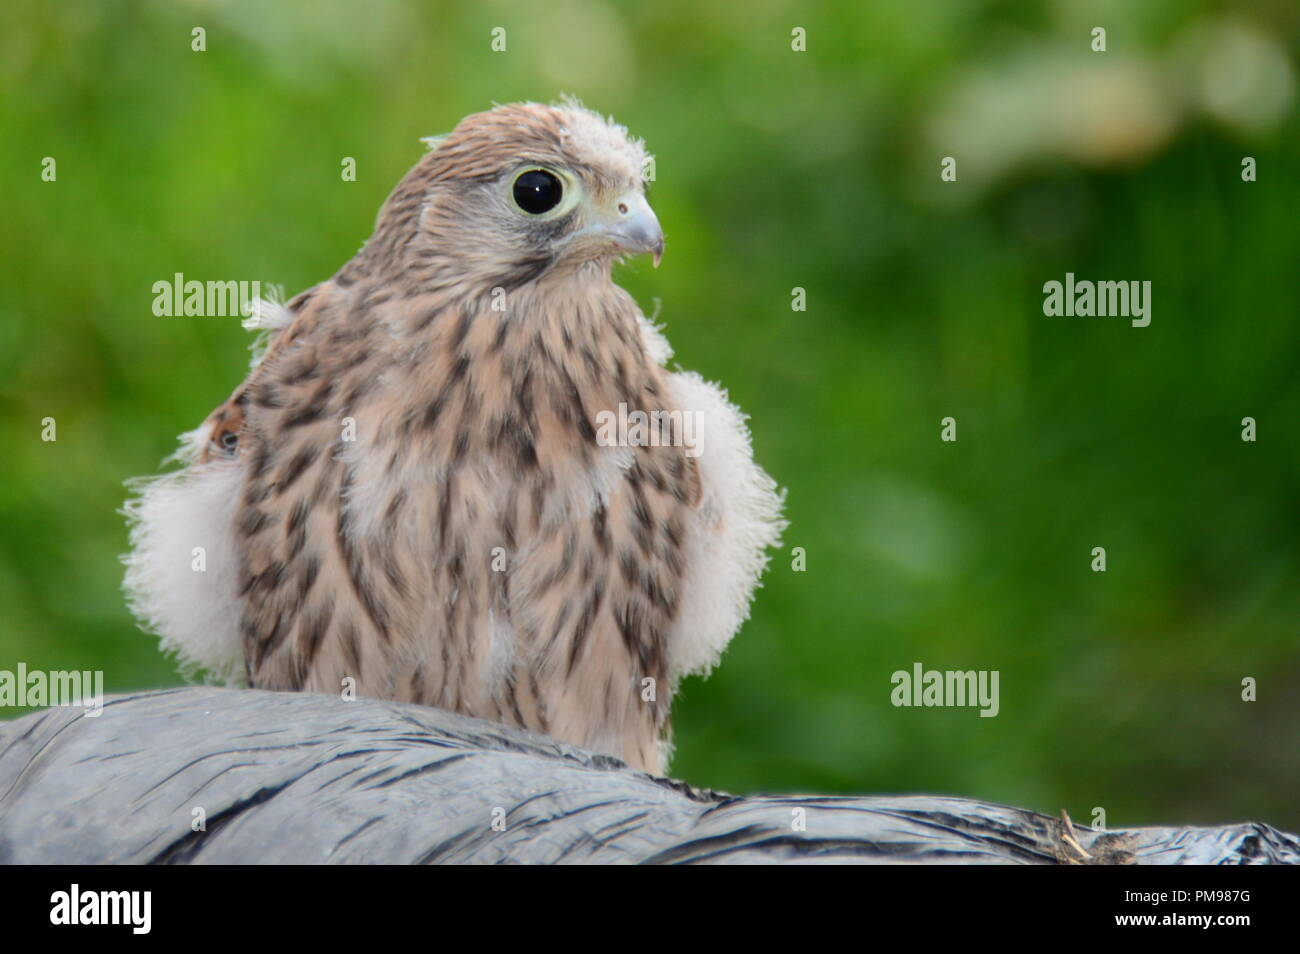 Close up portrait of a young kestrel (falco tinnunculus) that has recently left the nest - Stock Image